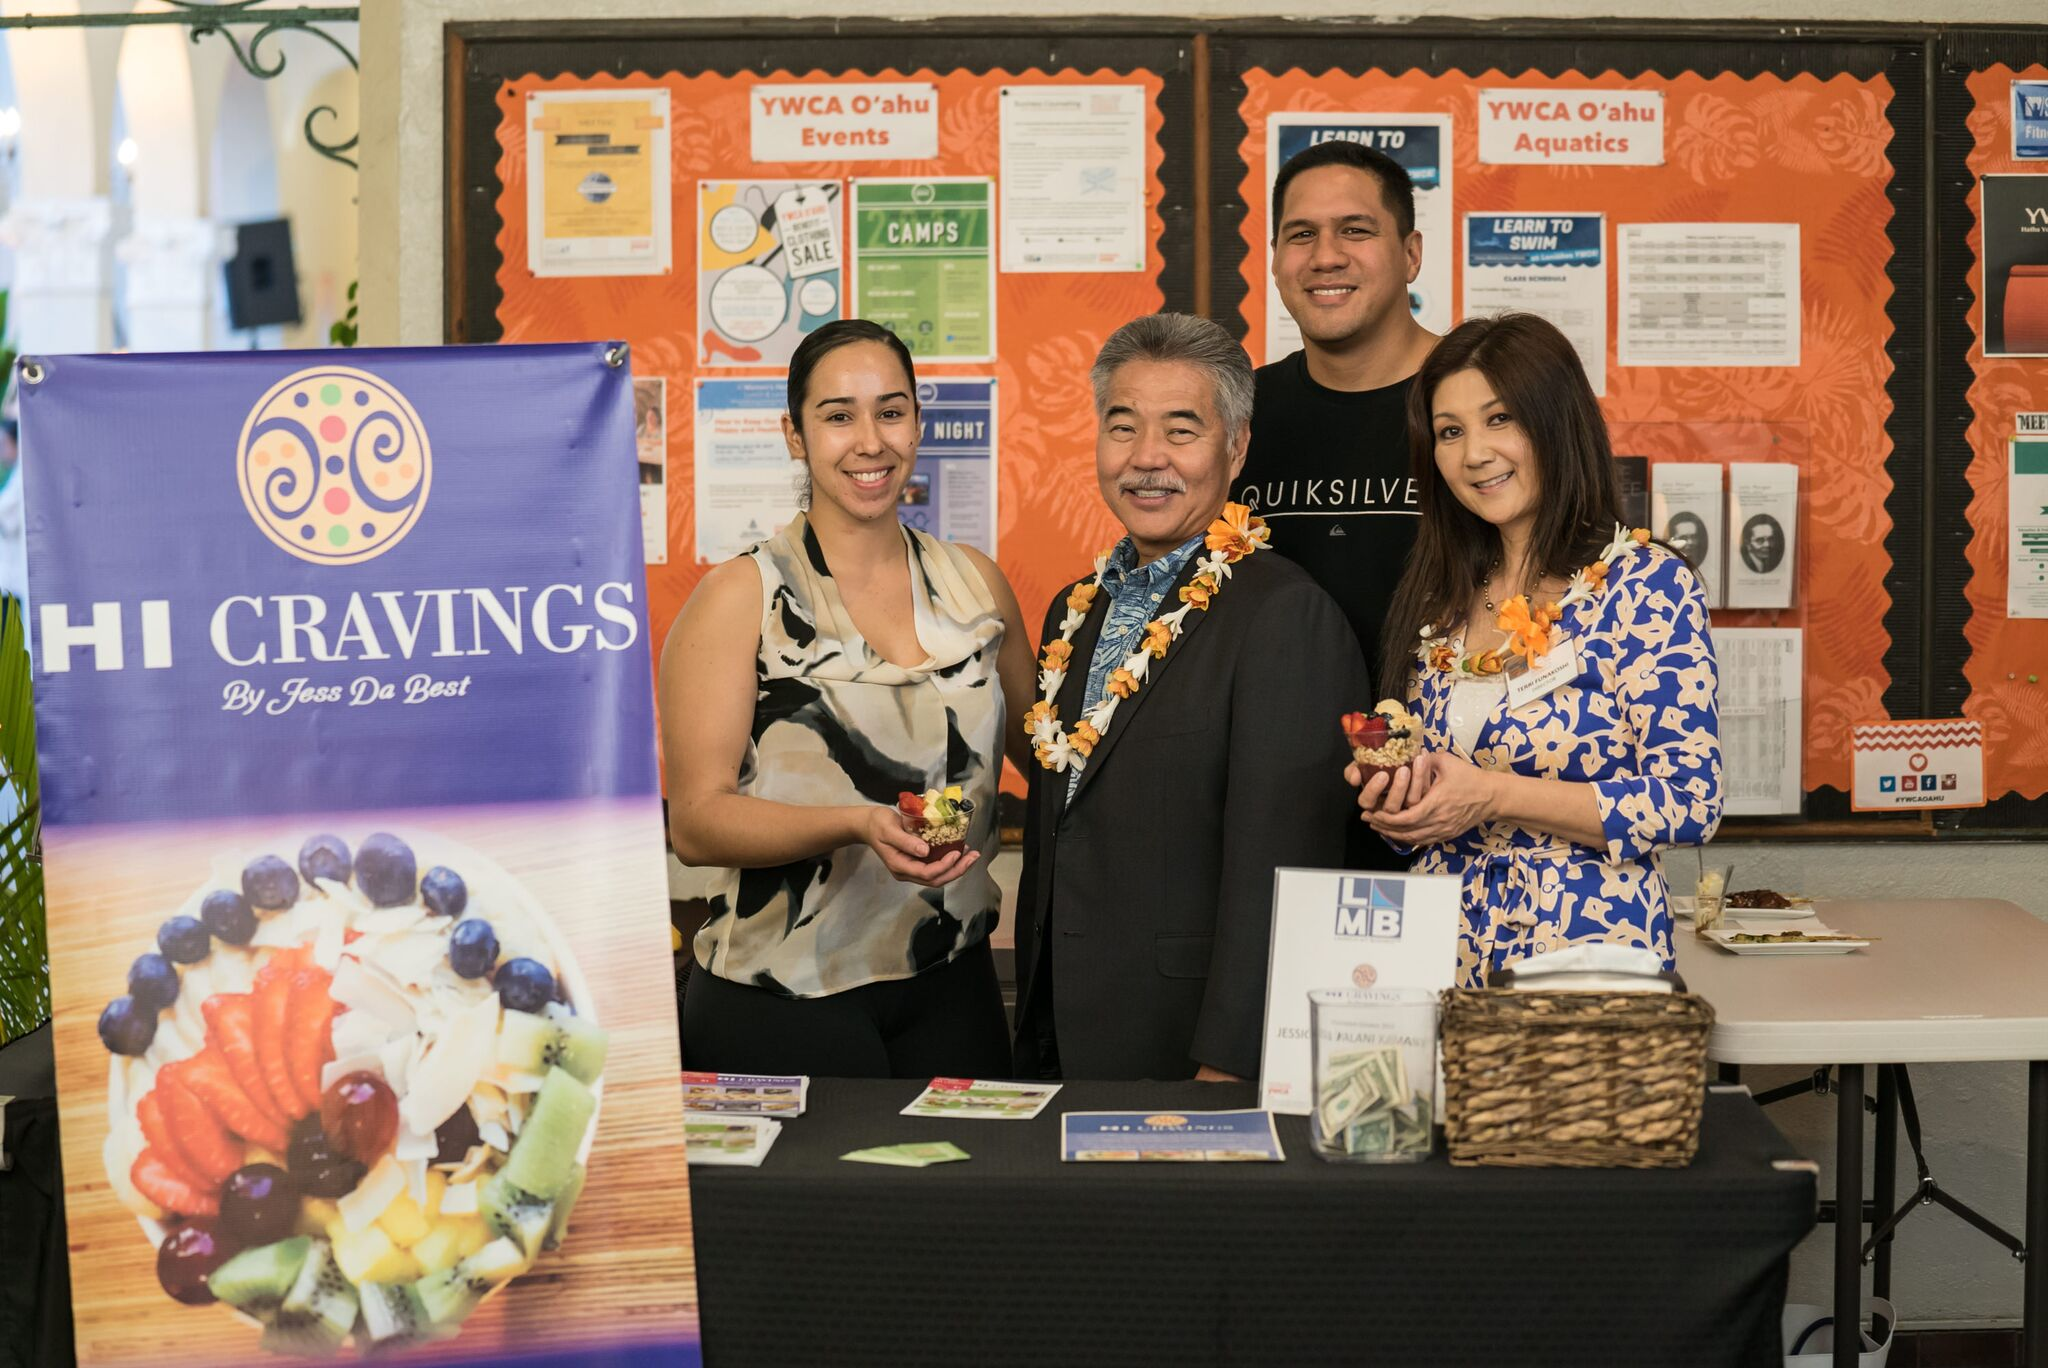 hI cRAVINGS gOV iGE.jpg